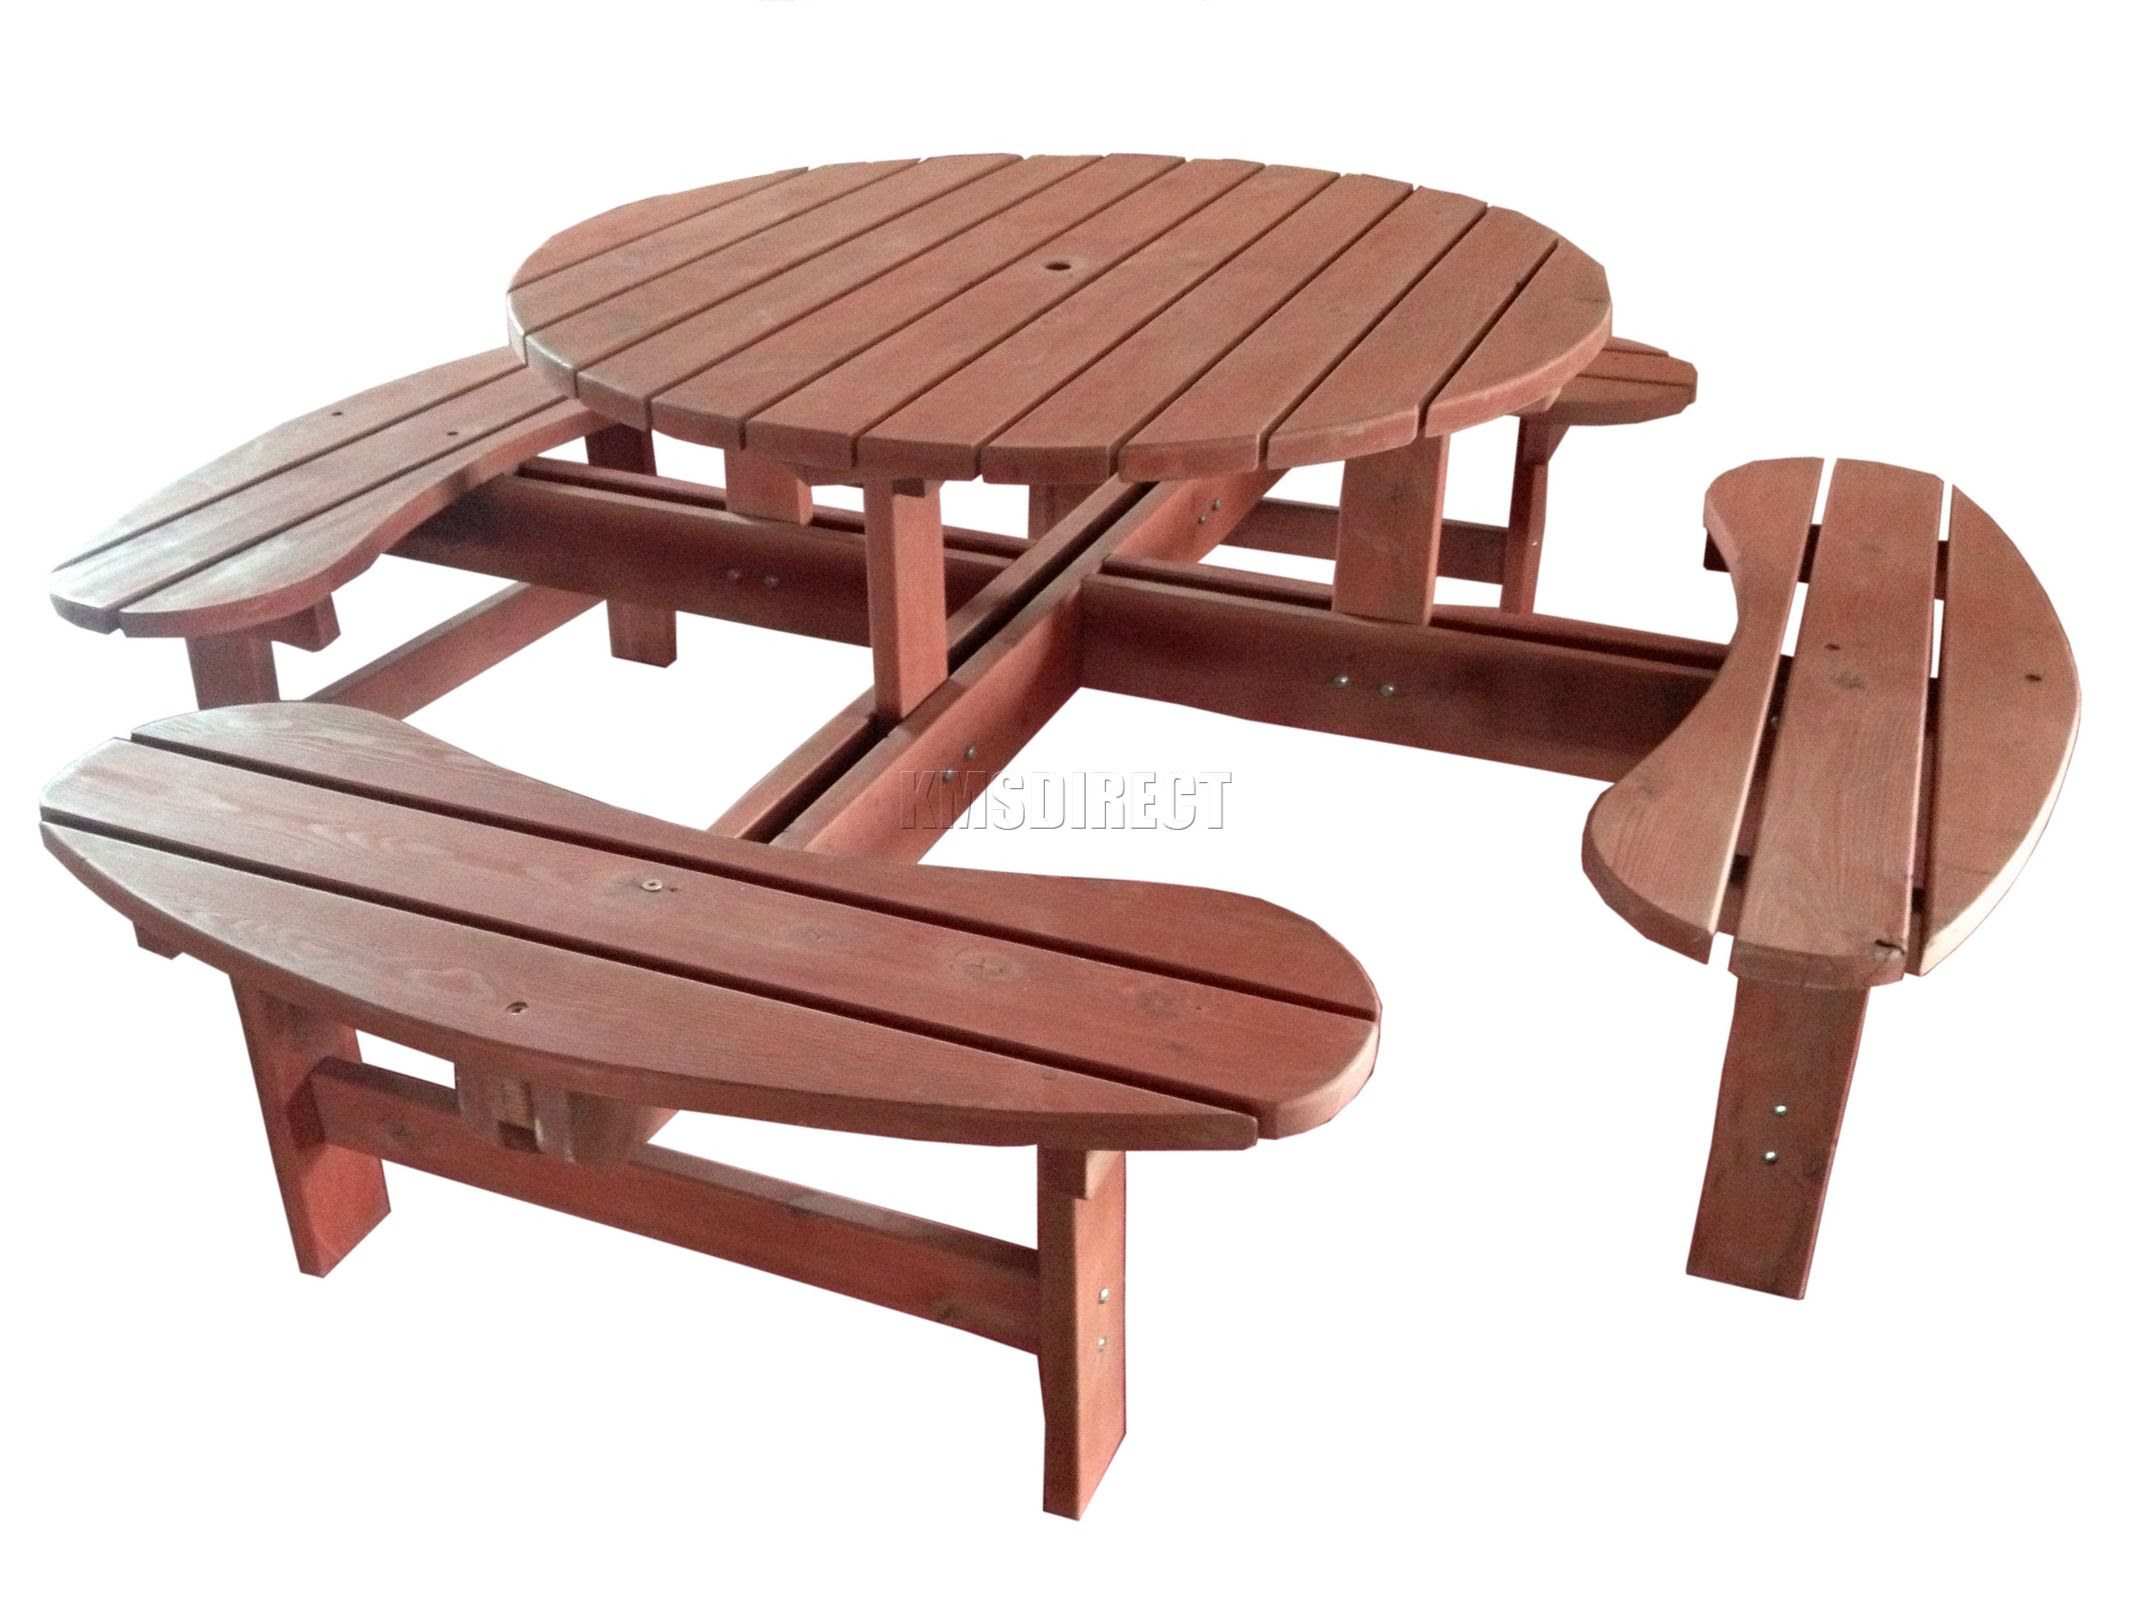 Fabulous Plans Woodworking How To Make A Round Wood Picnic Table Pabps2019 Chair Design Images Pabps2019Com